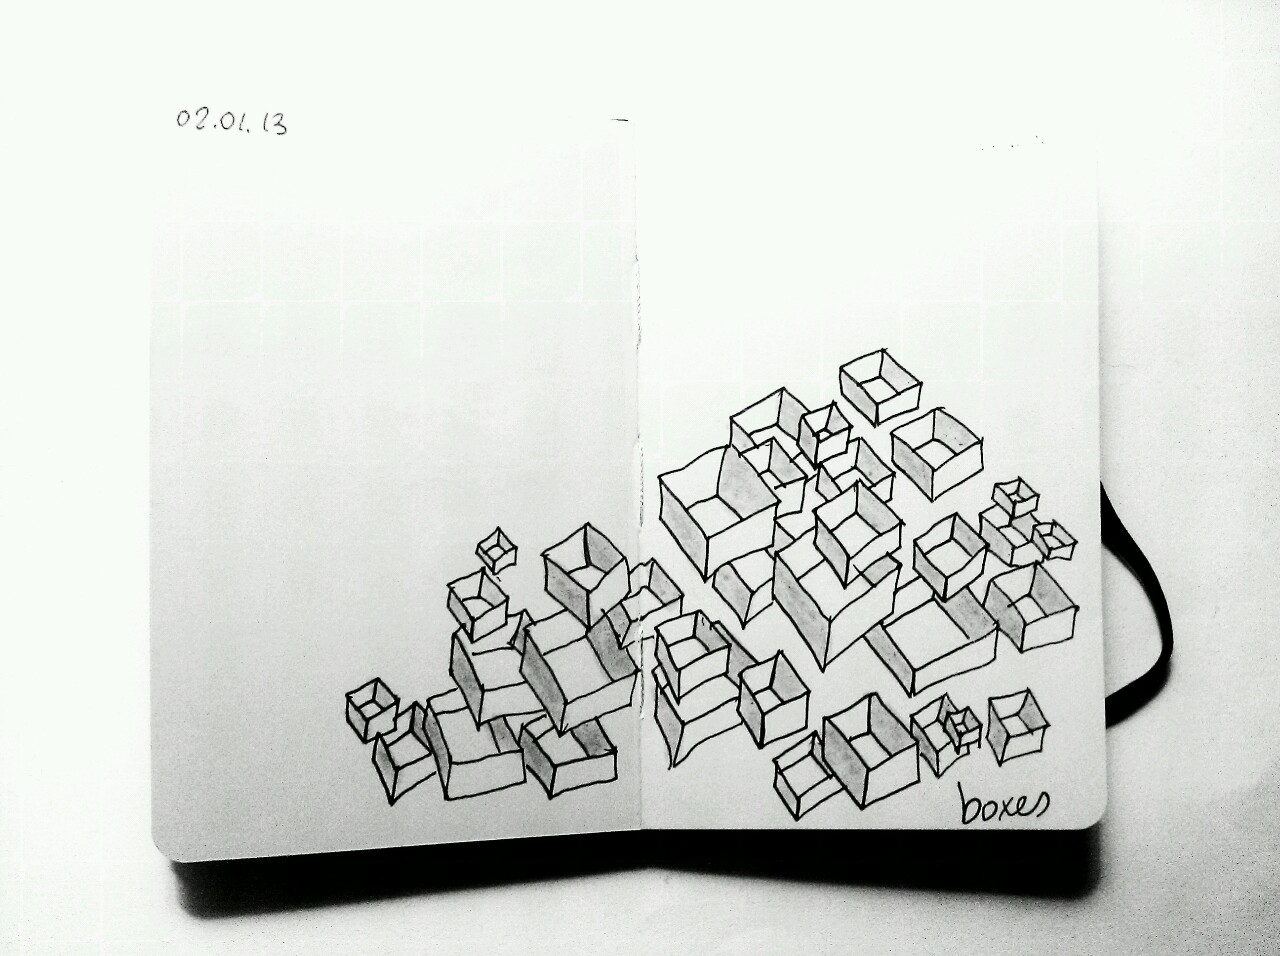 365 drawings later … day 337 … boxes [sometimes you just wanna doodle]